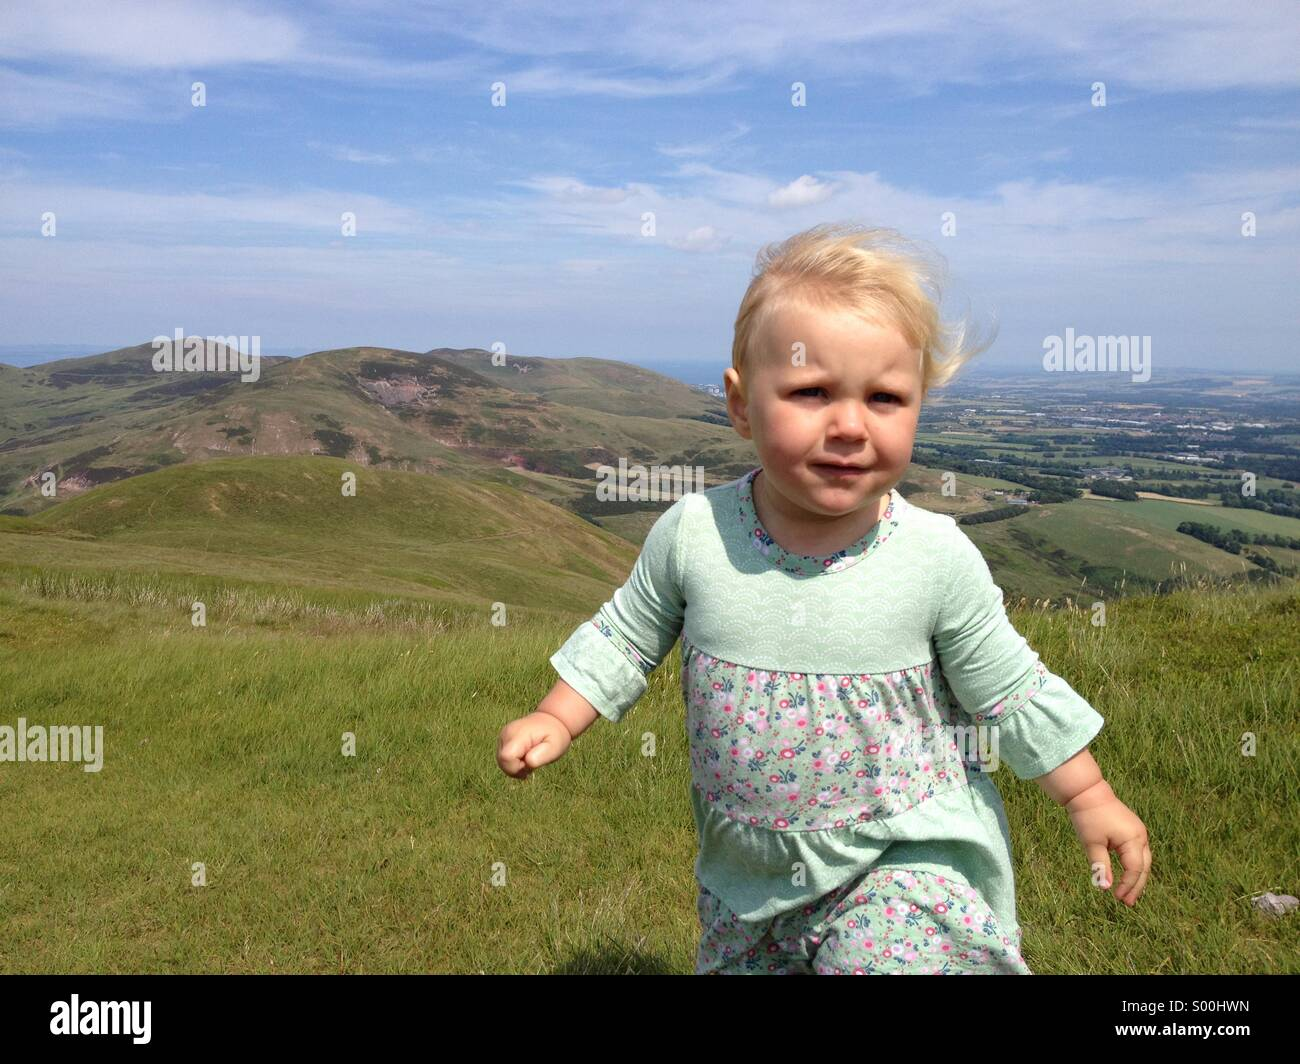 Toddler in the Pentland Hills on a warm sunny day - Stock Image